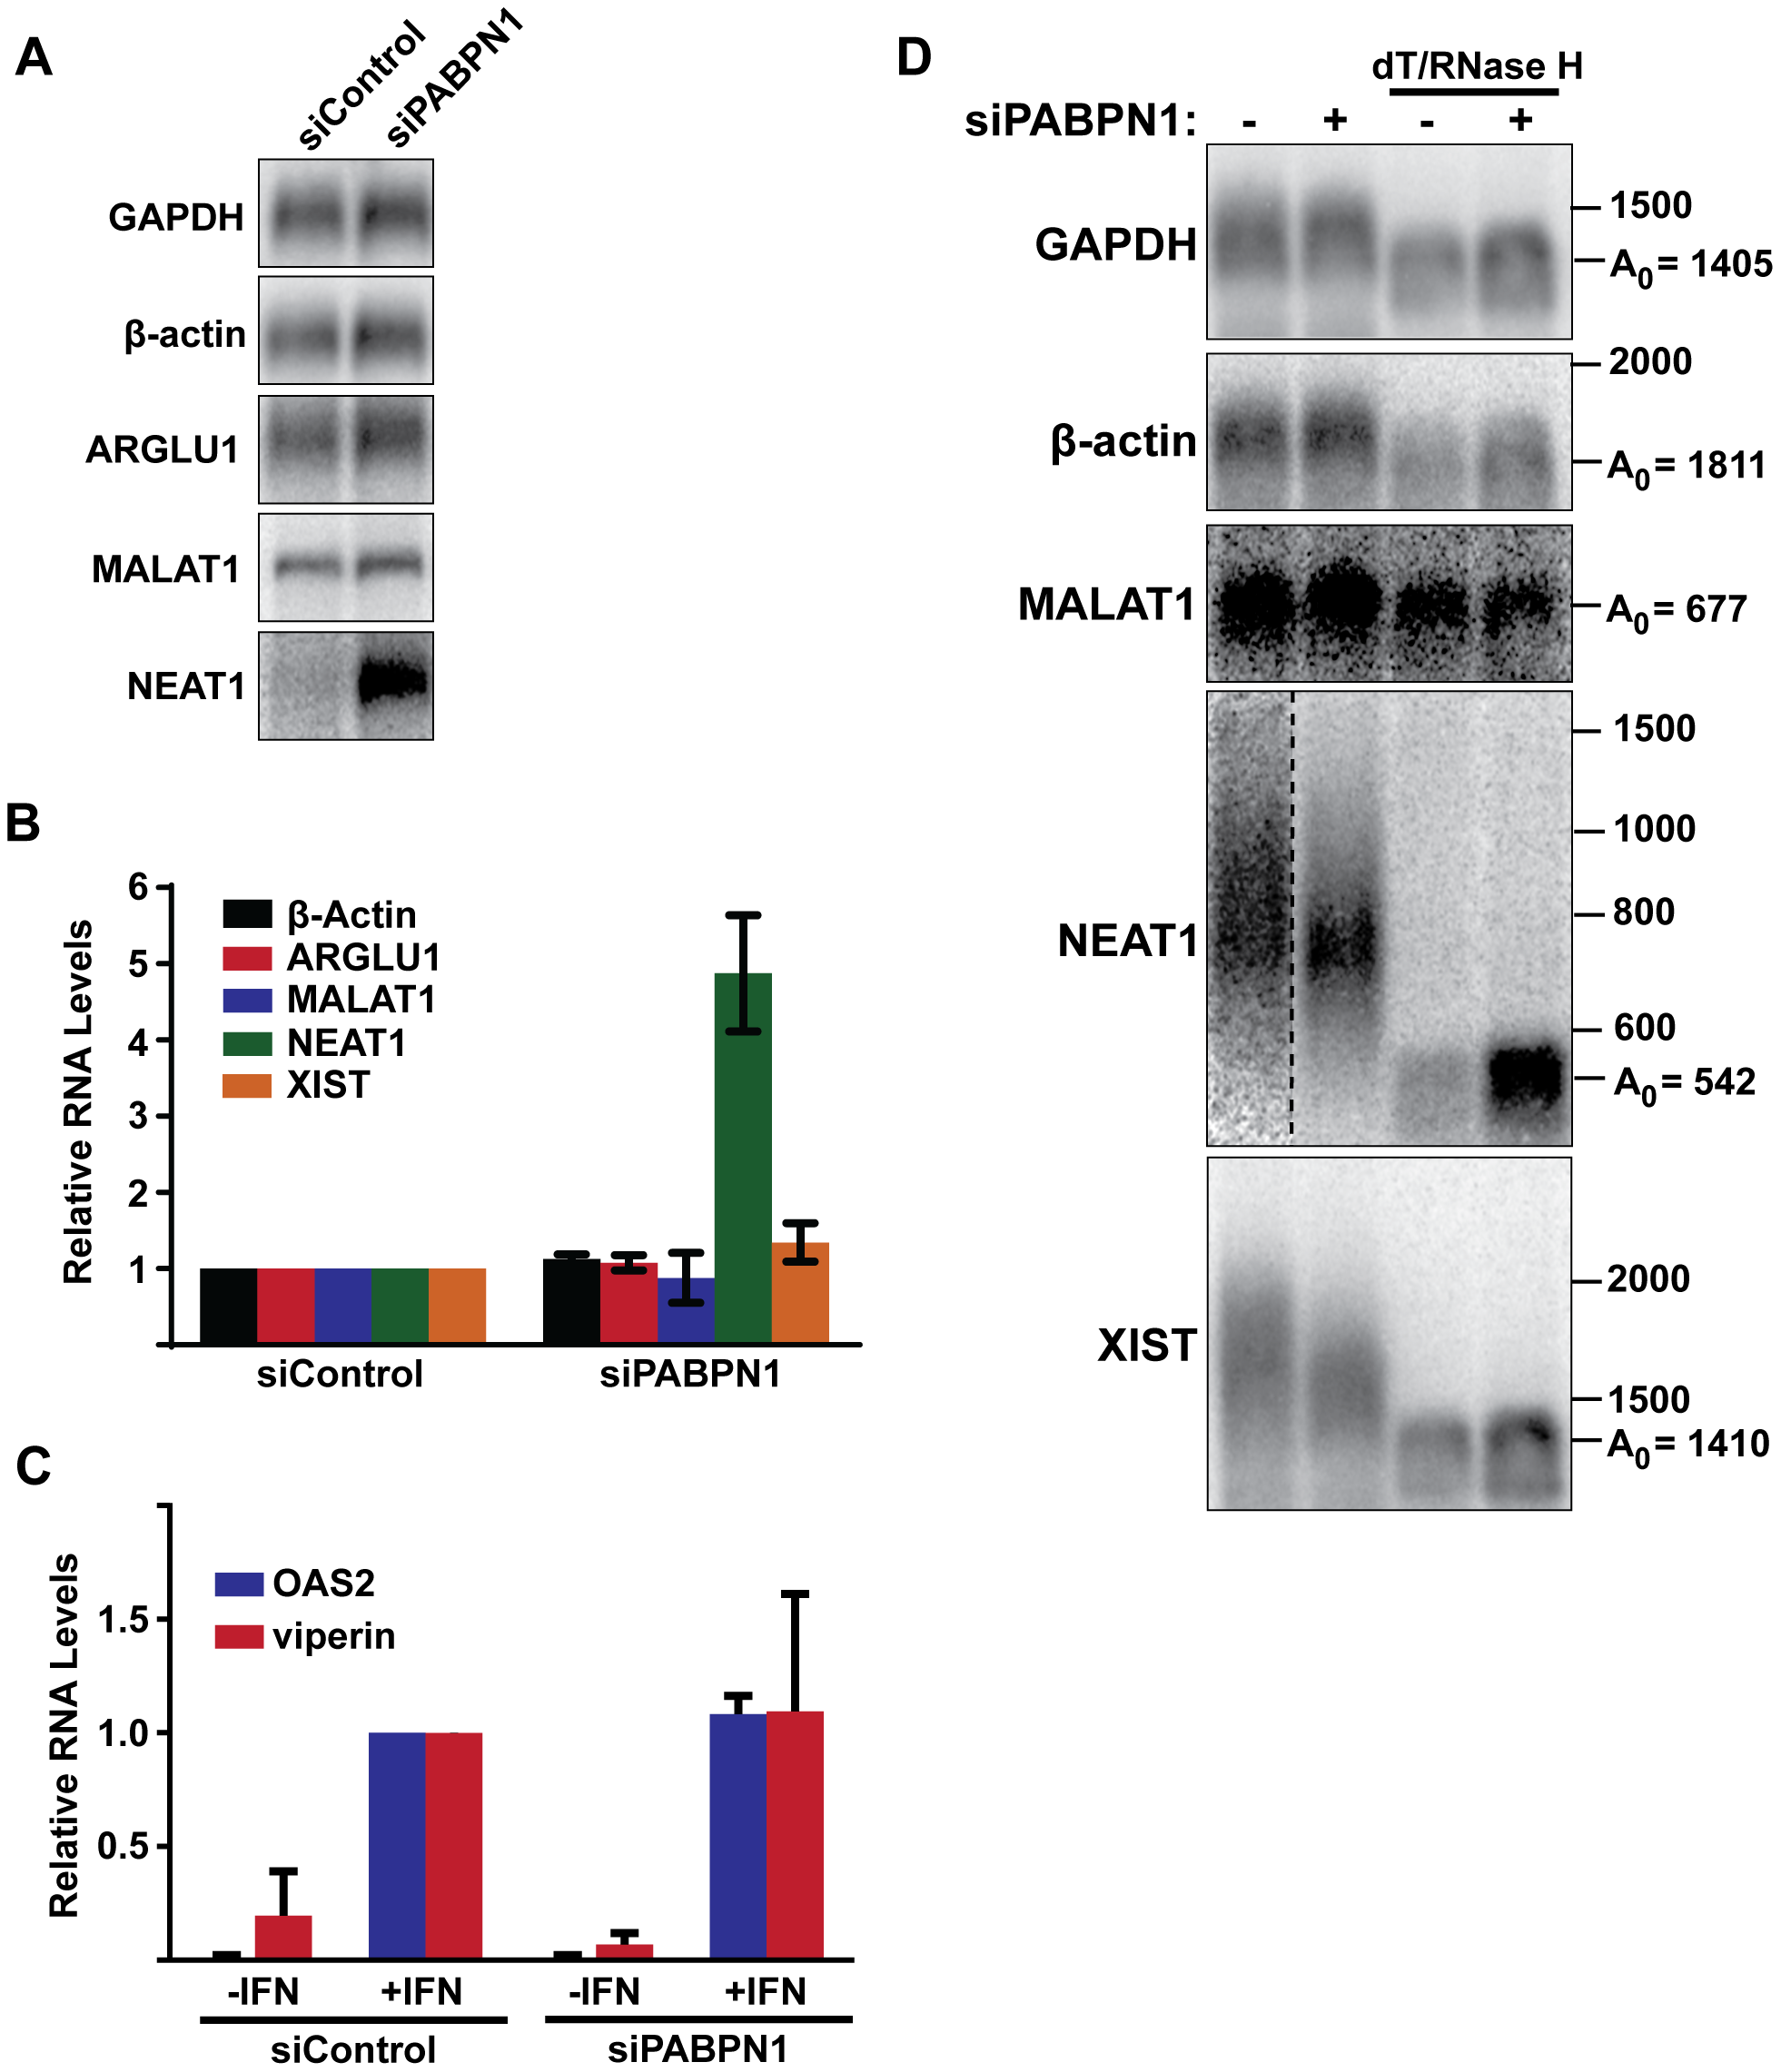 Effects of PABPN1 knockdown on steady-state levels and poly(A) tail lengths of endogenous RNAs.